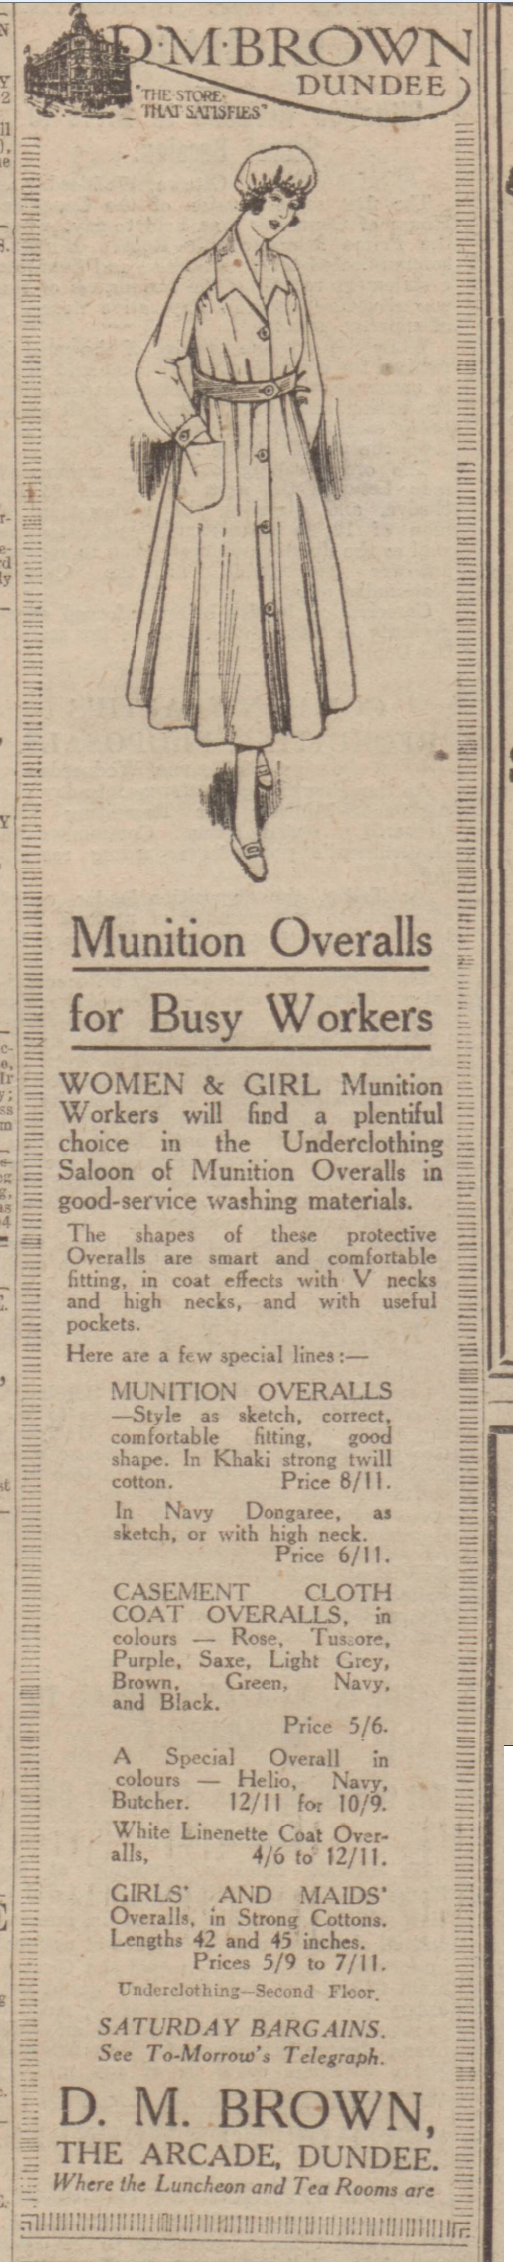 historical newspaper report on Women munition workers in WW1